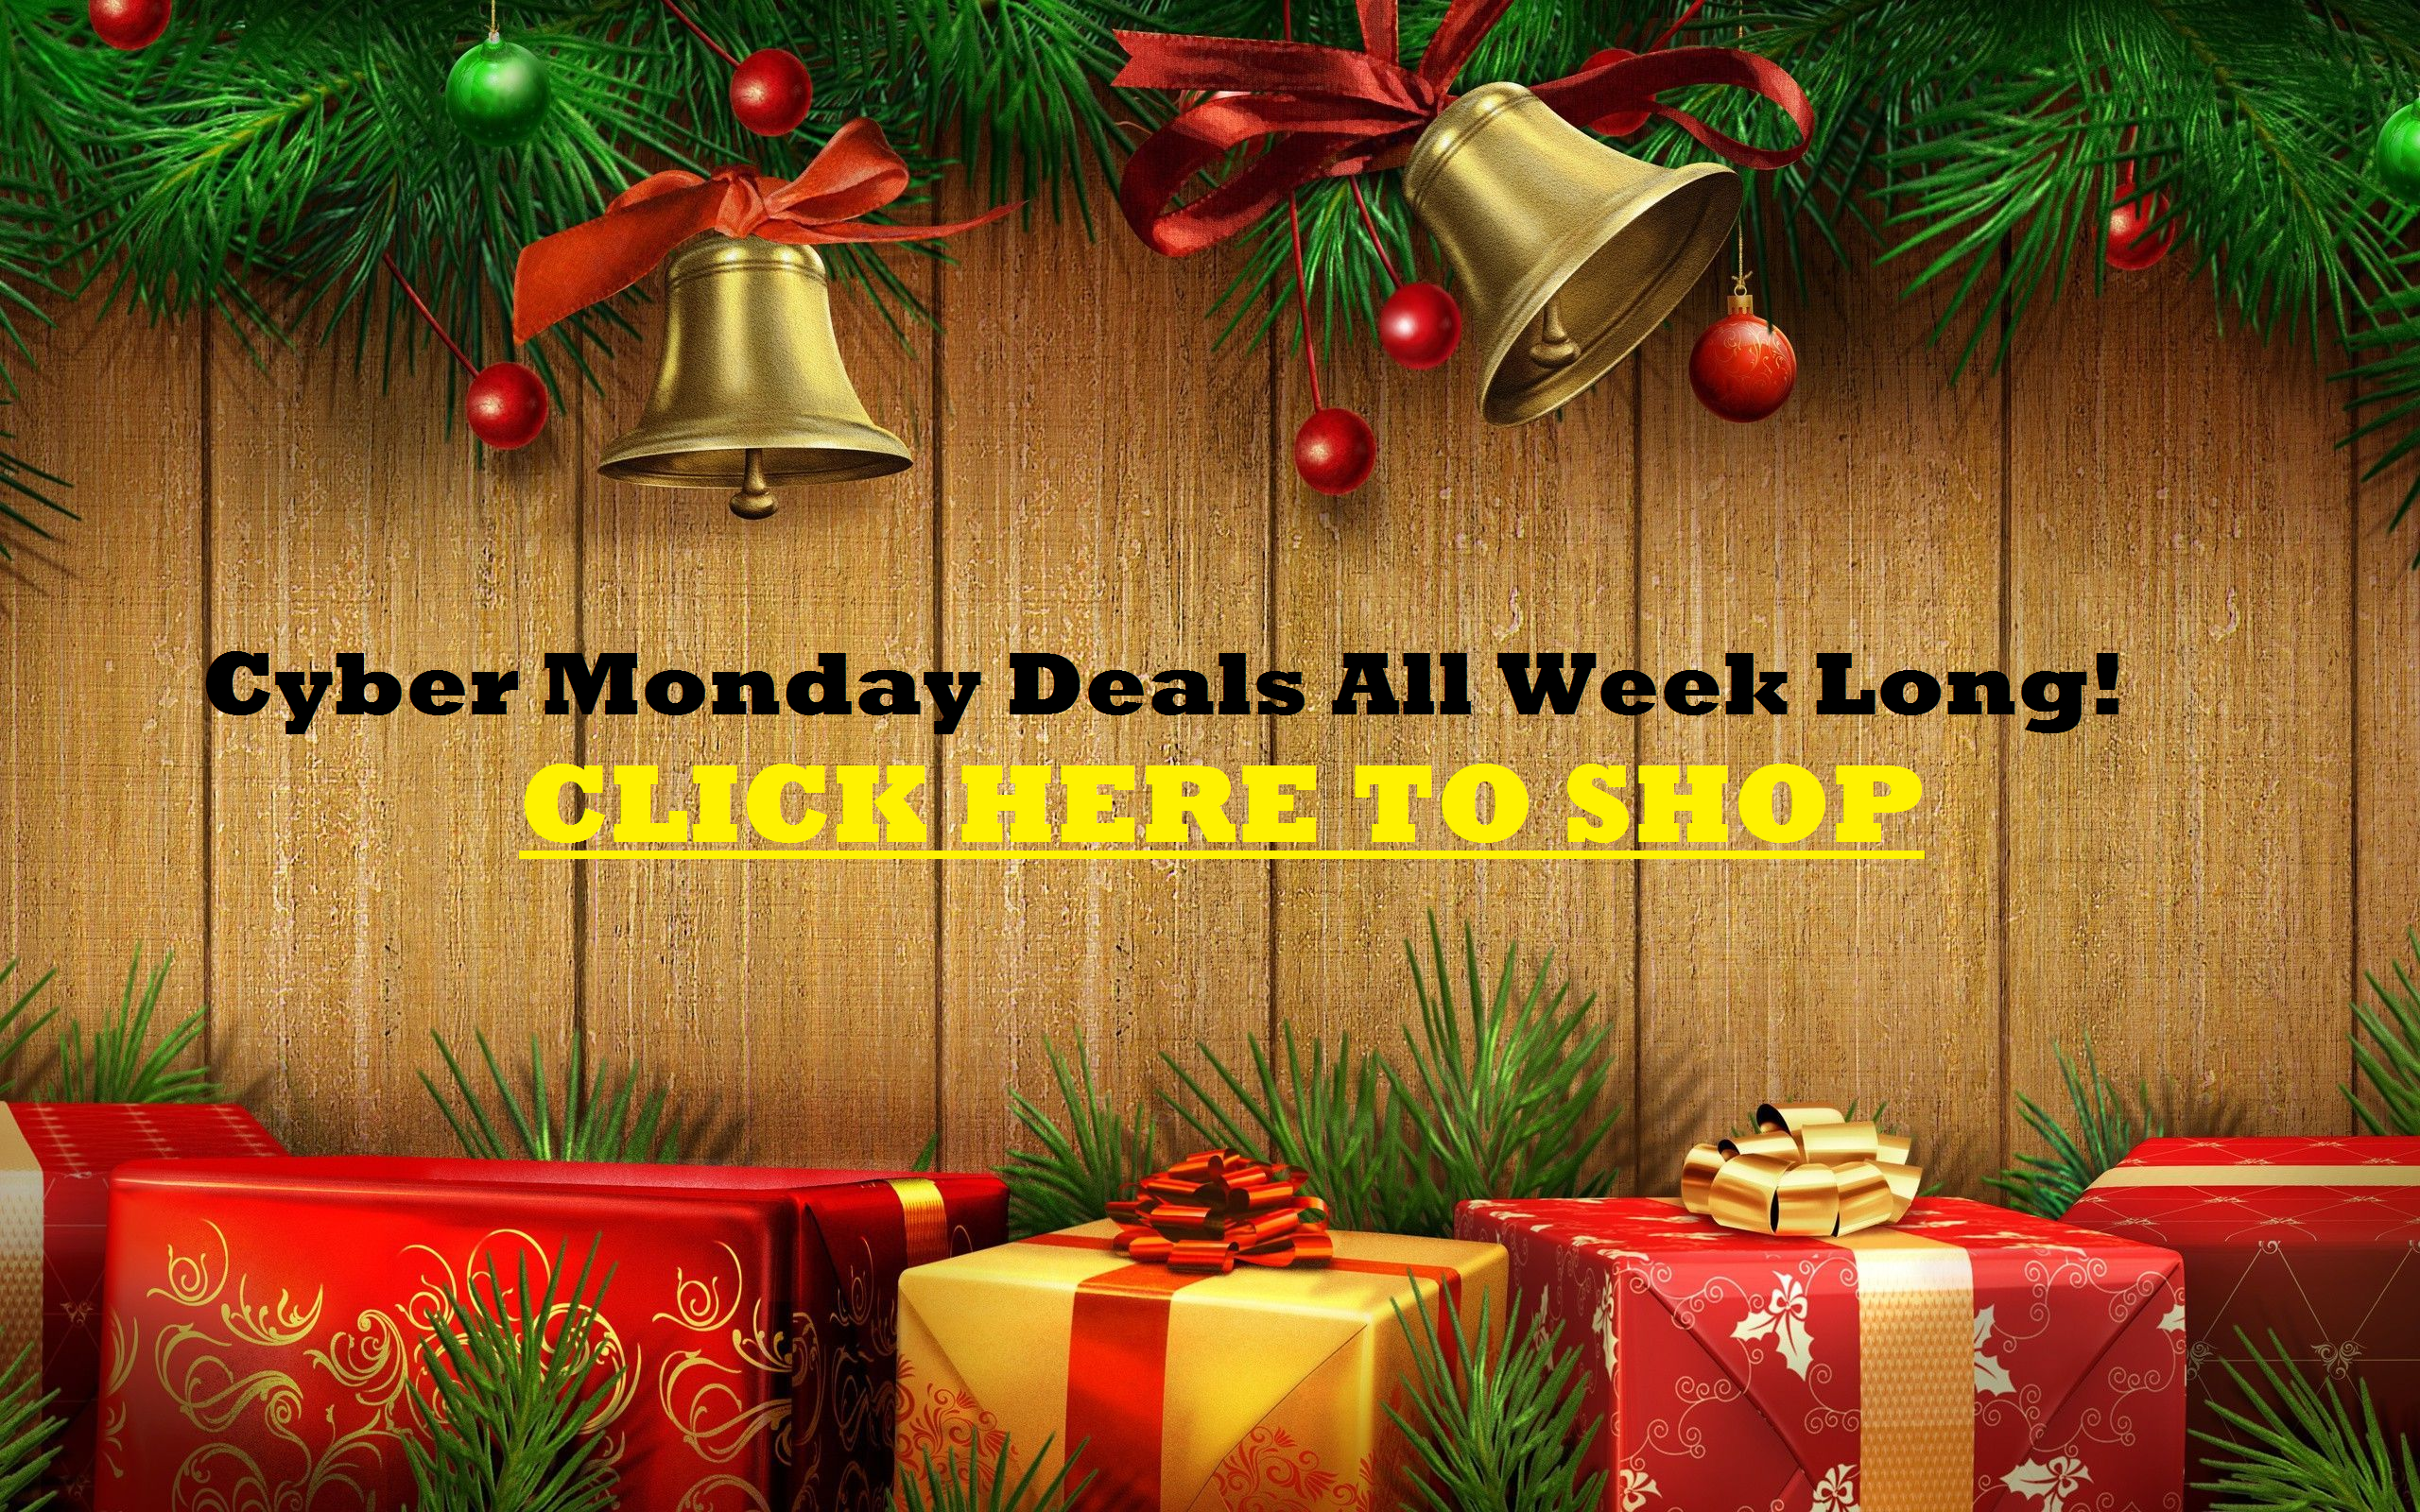 scentsy cyber monday deals - Cyber Monday Christmas Decorations